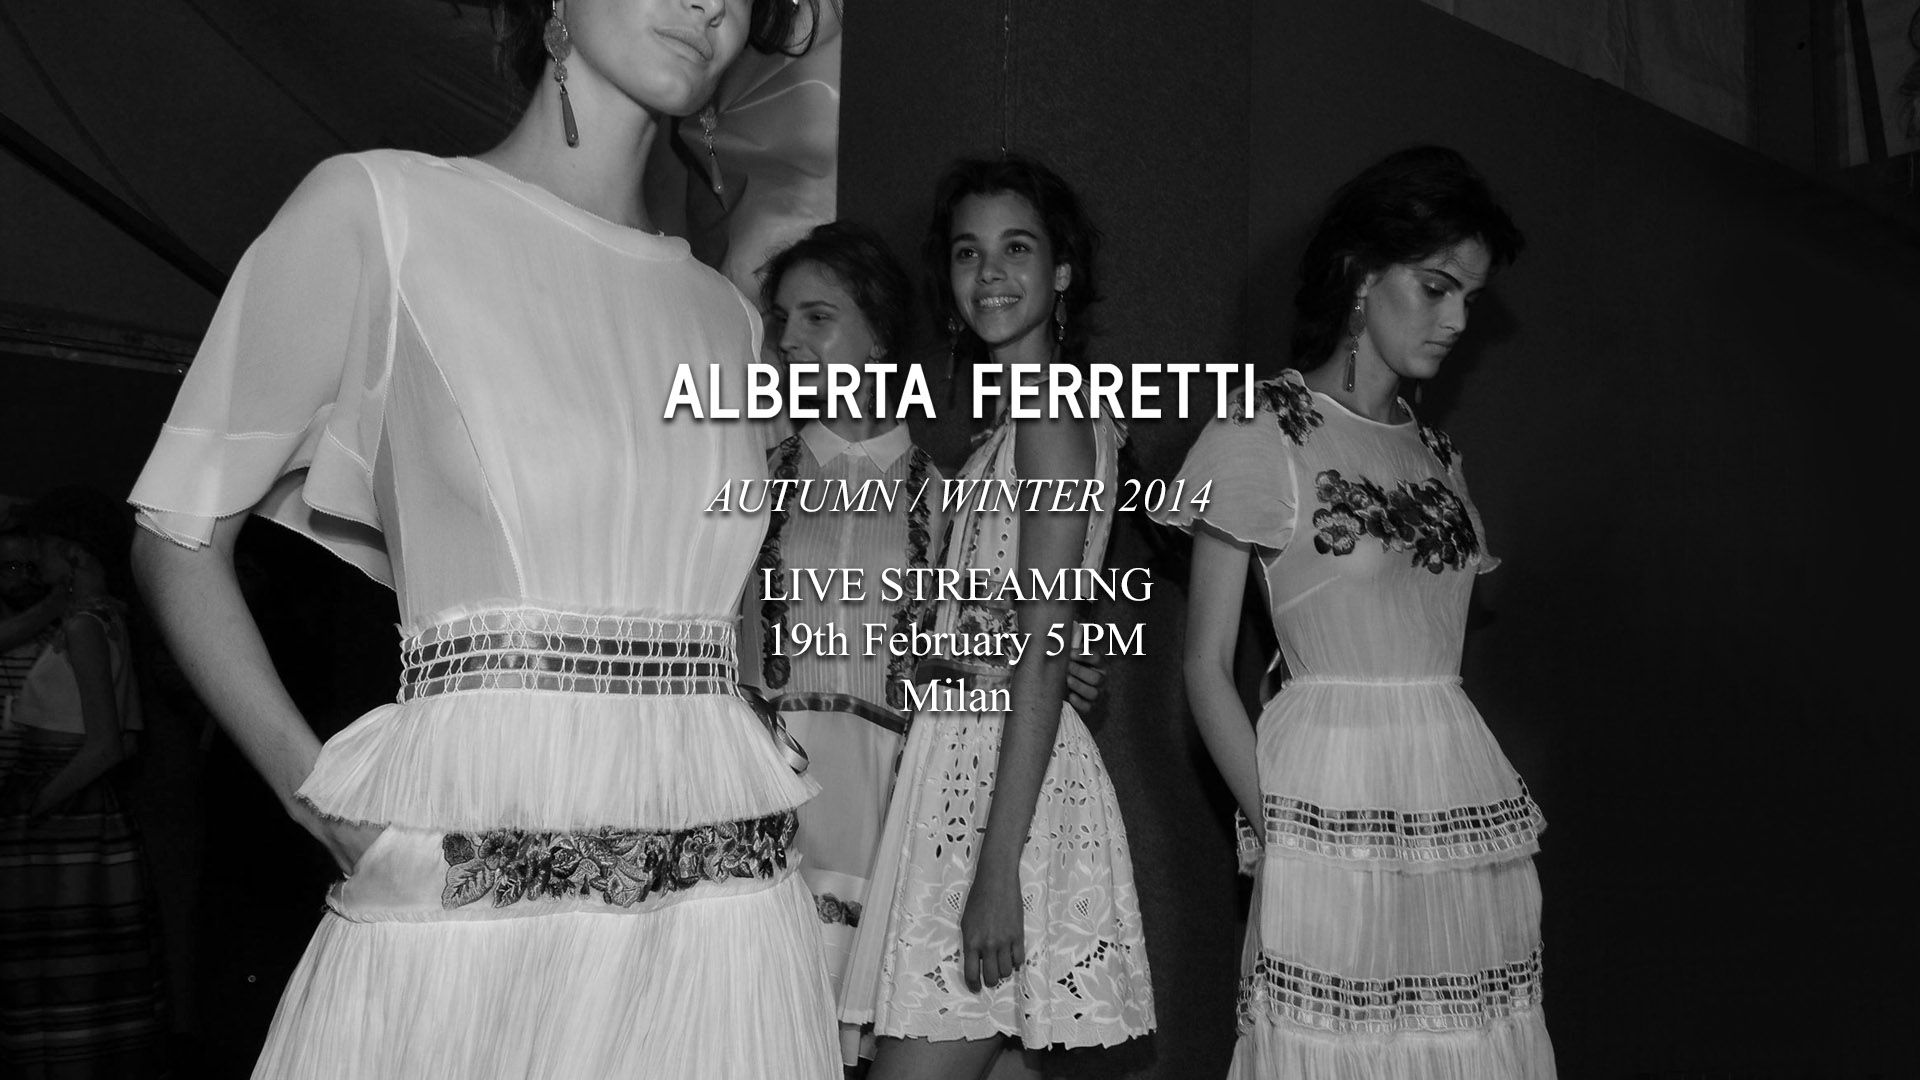 Alberta Ferretti Autumn Winter 2014 Fashion Show Live Streaming 19th February 5pm Milan